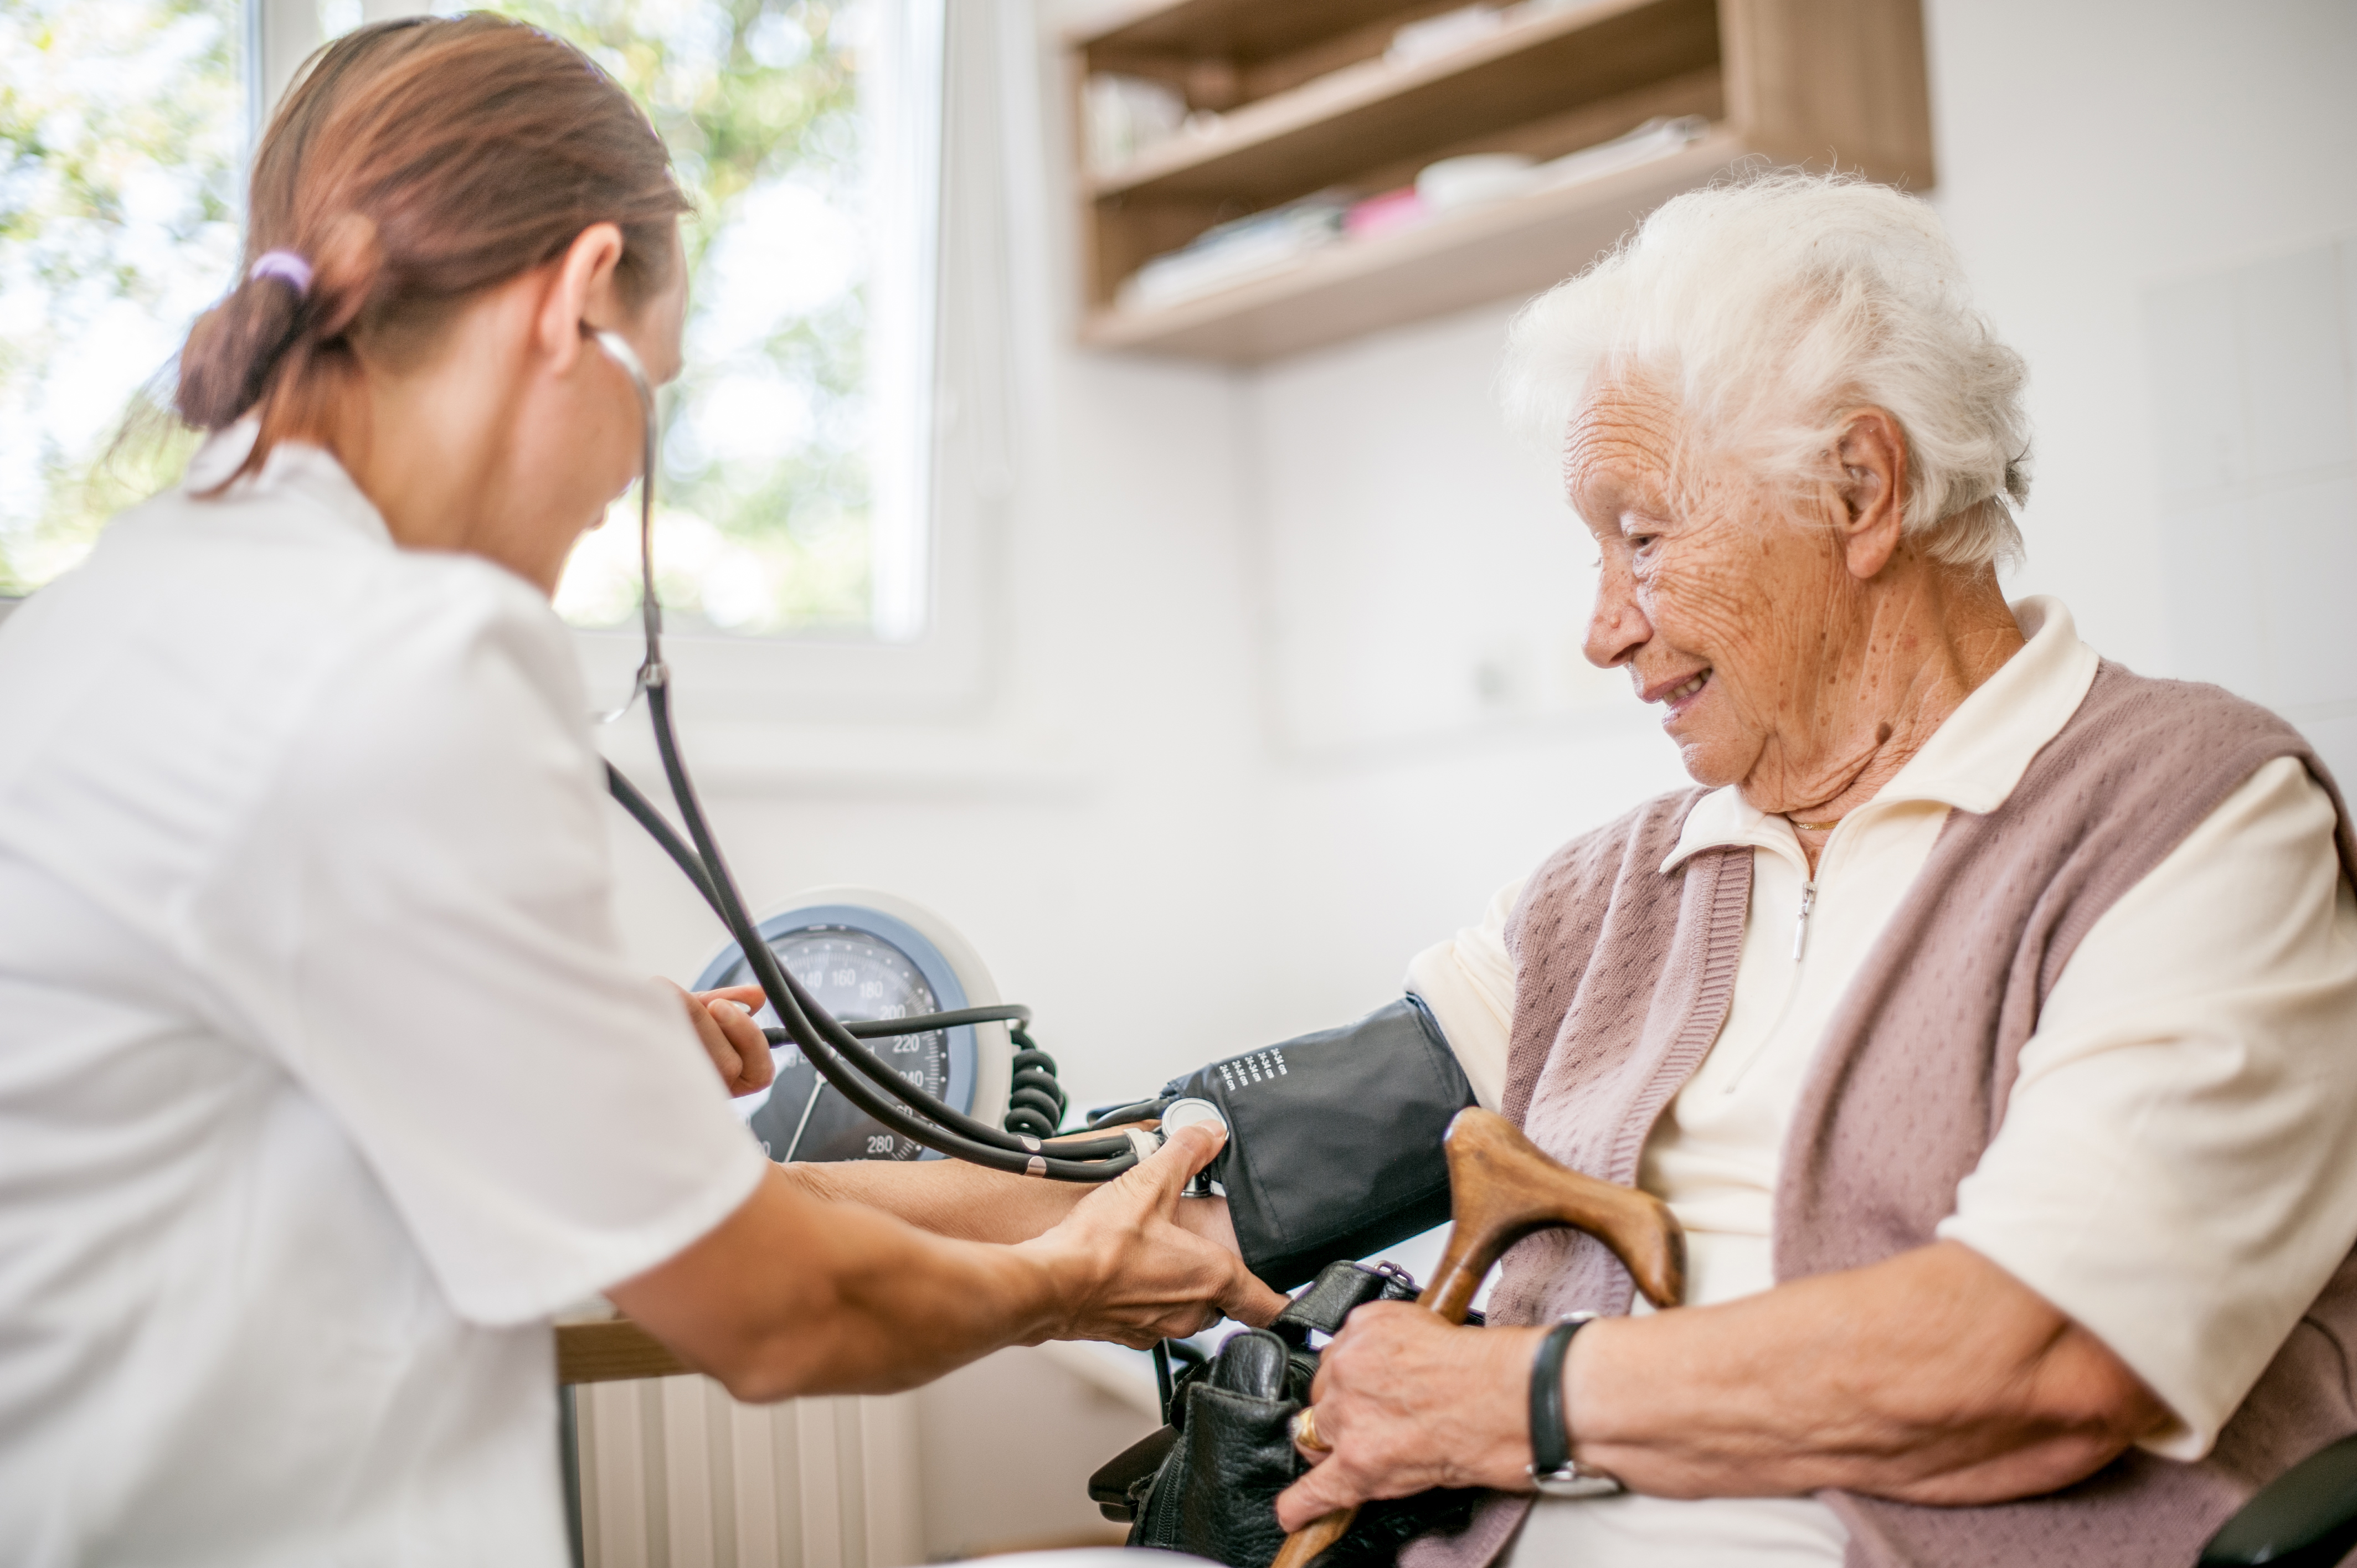 Doctor checks the blood pressure of a senior woman.